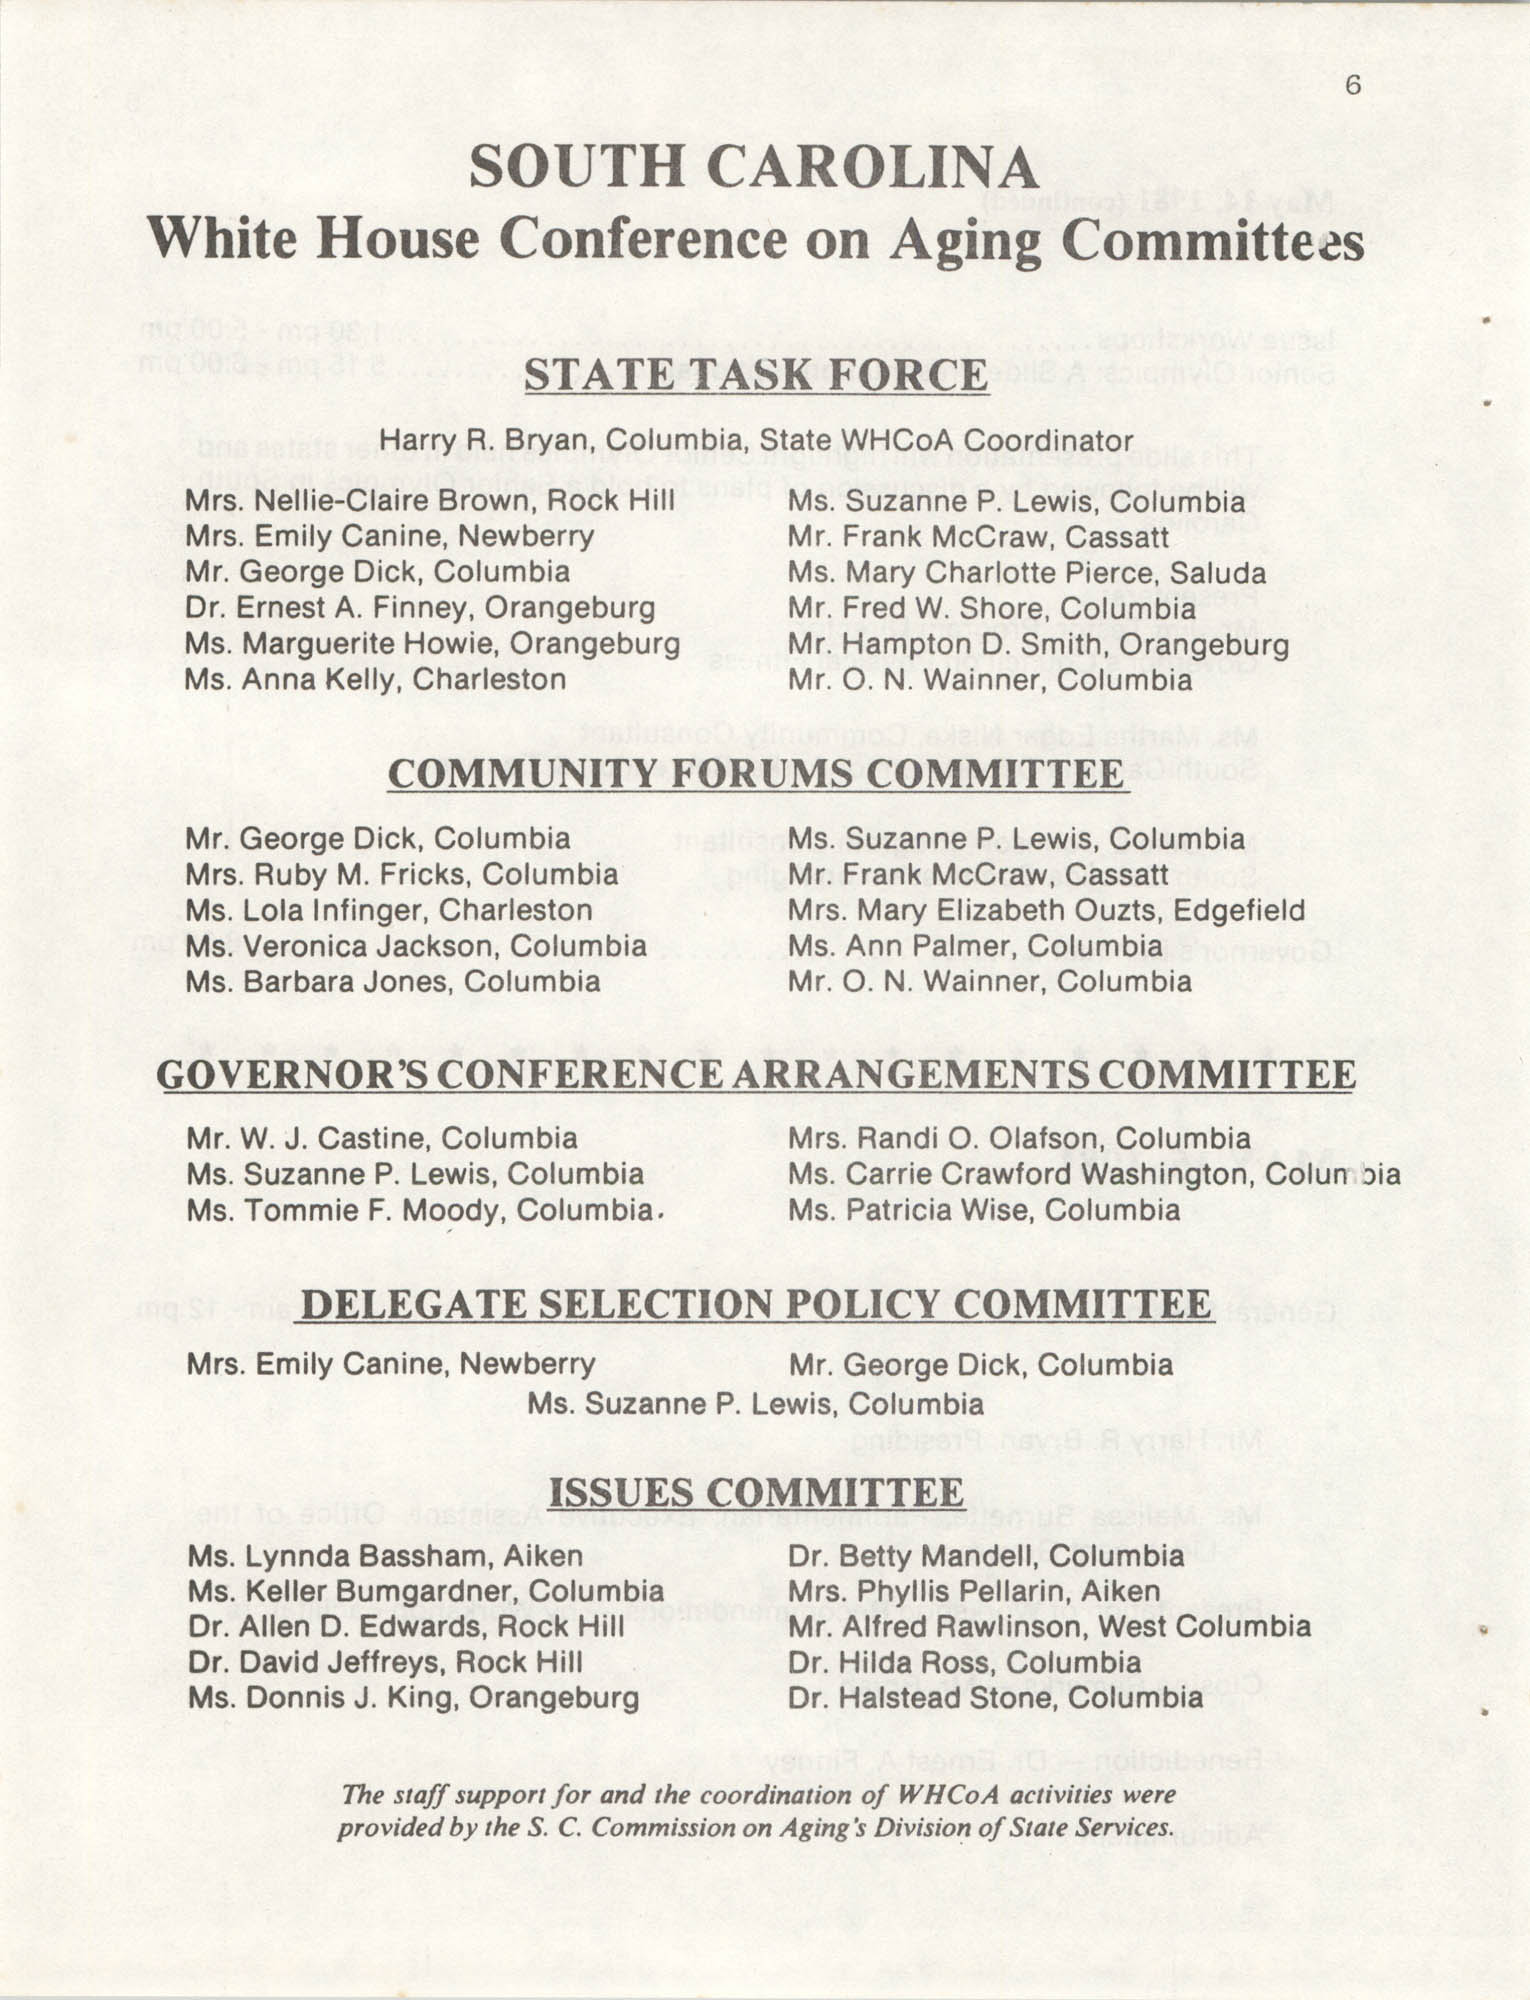 South Carolina Governor's White House Conference on Aging Proceedings, 1981, Page 6